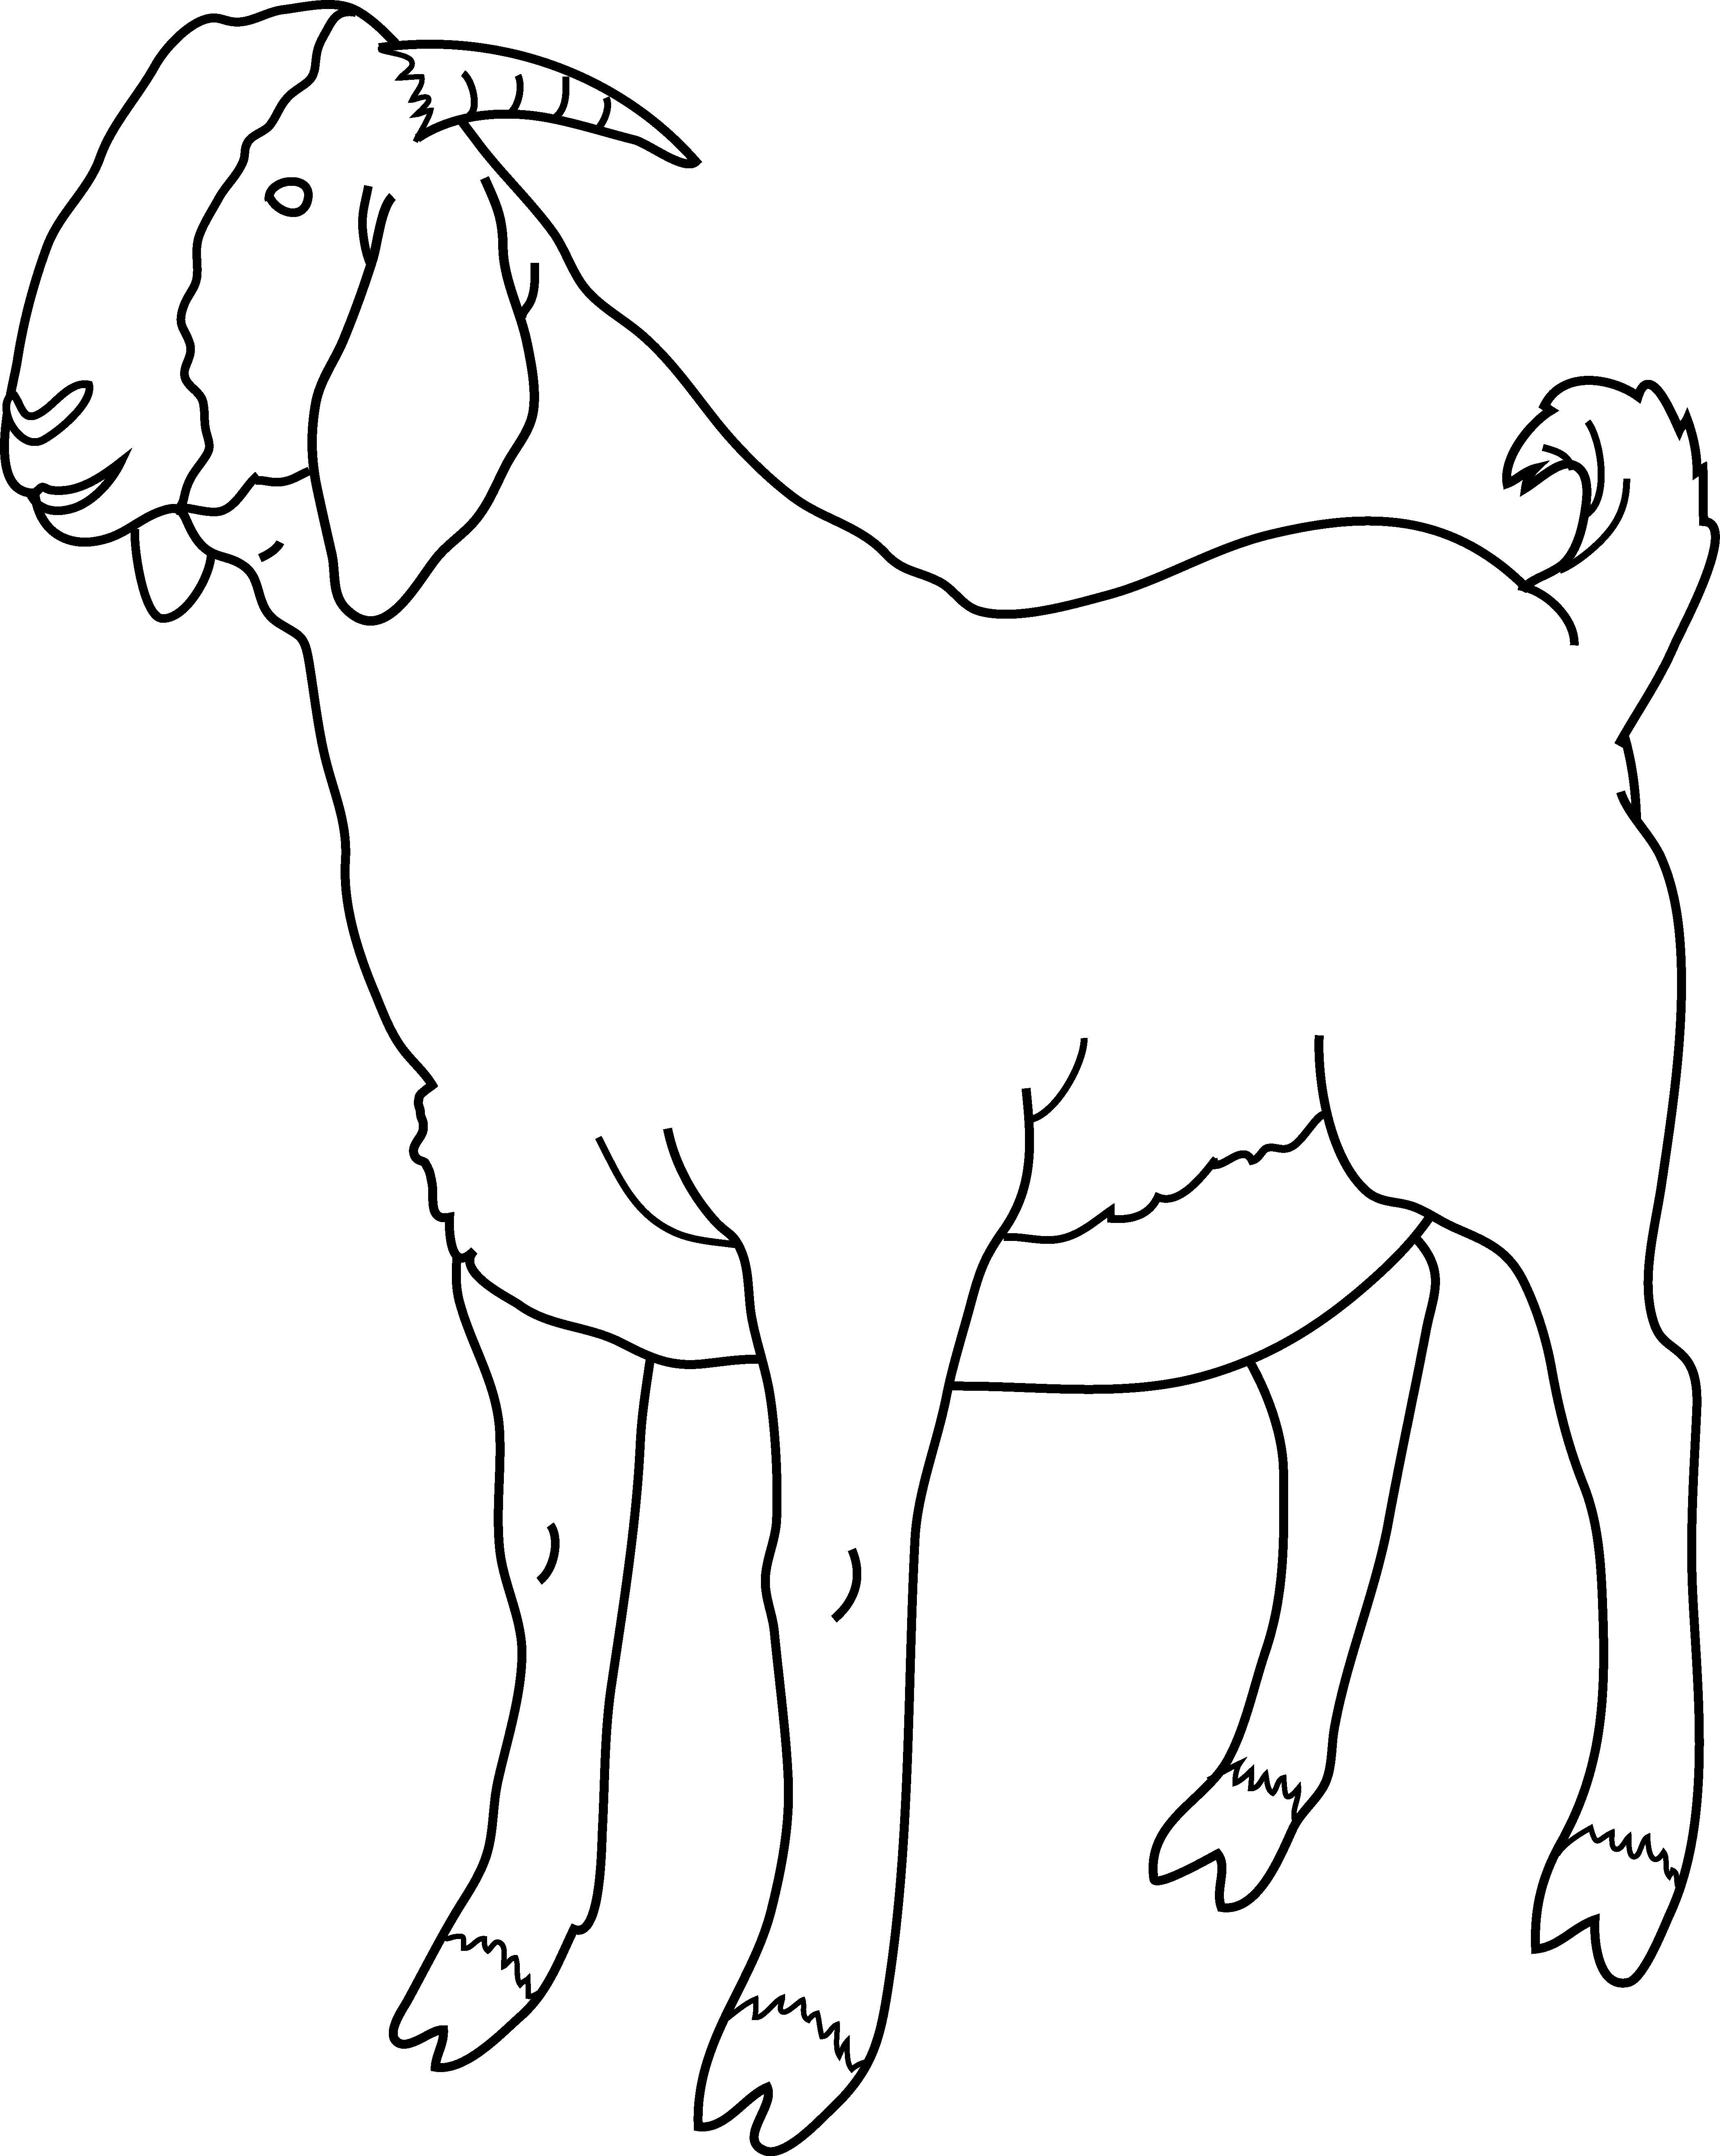 goat coloring images free printable goat coloring pages for kids coloring goat images